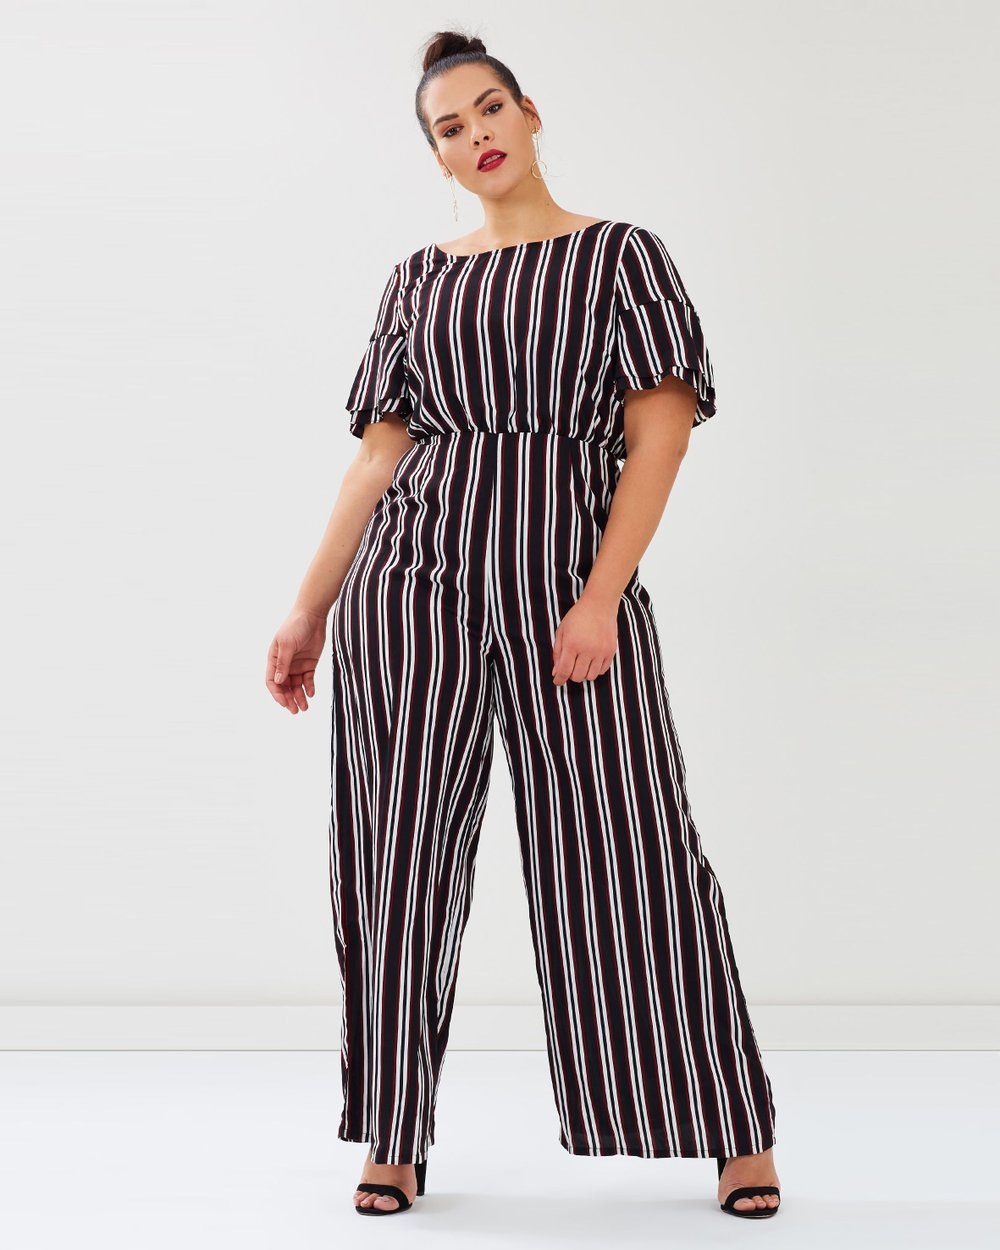 f1cc5c06d198 ICONIC EXCLUSIVE - Edina Wrap Back Jumpsuit by Atmos Here Curvy Online